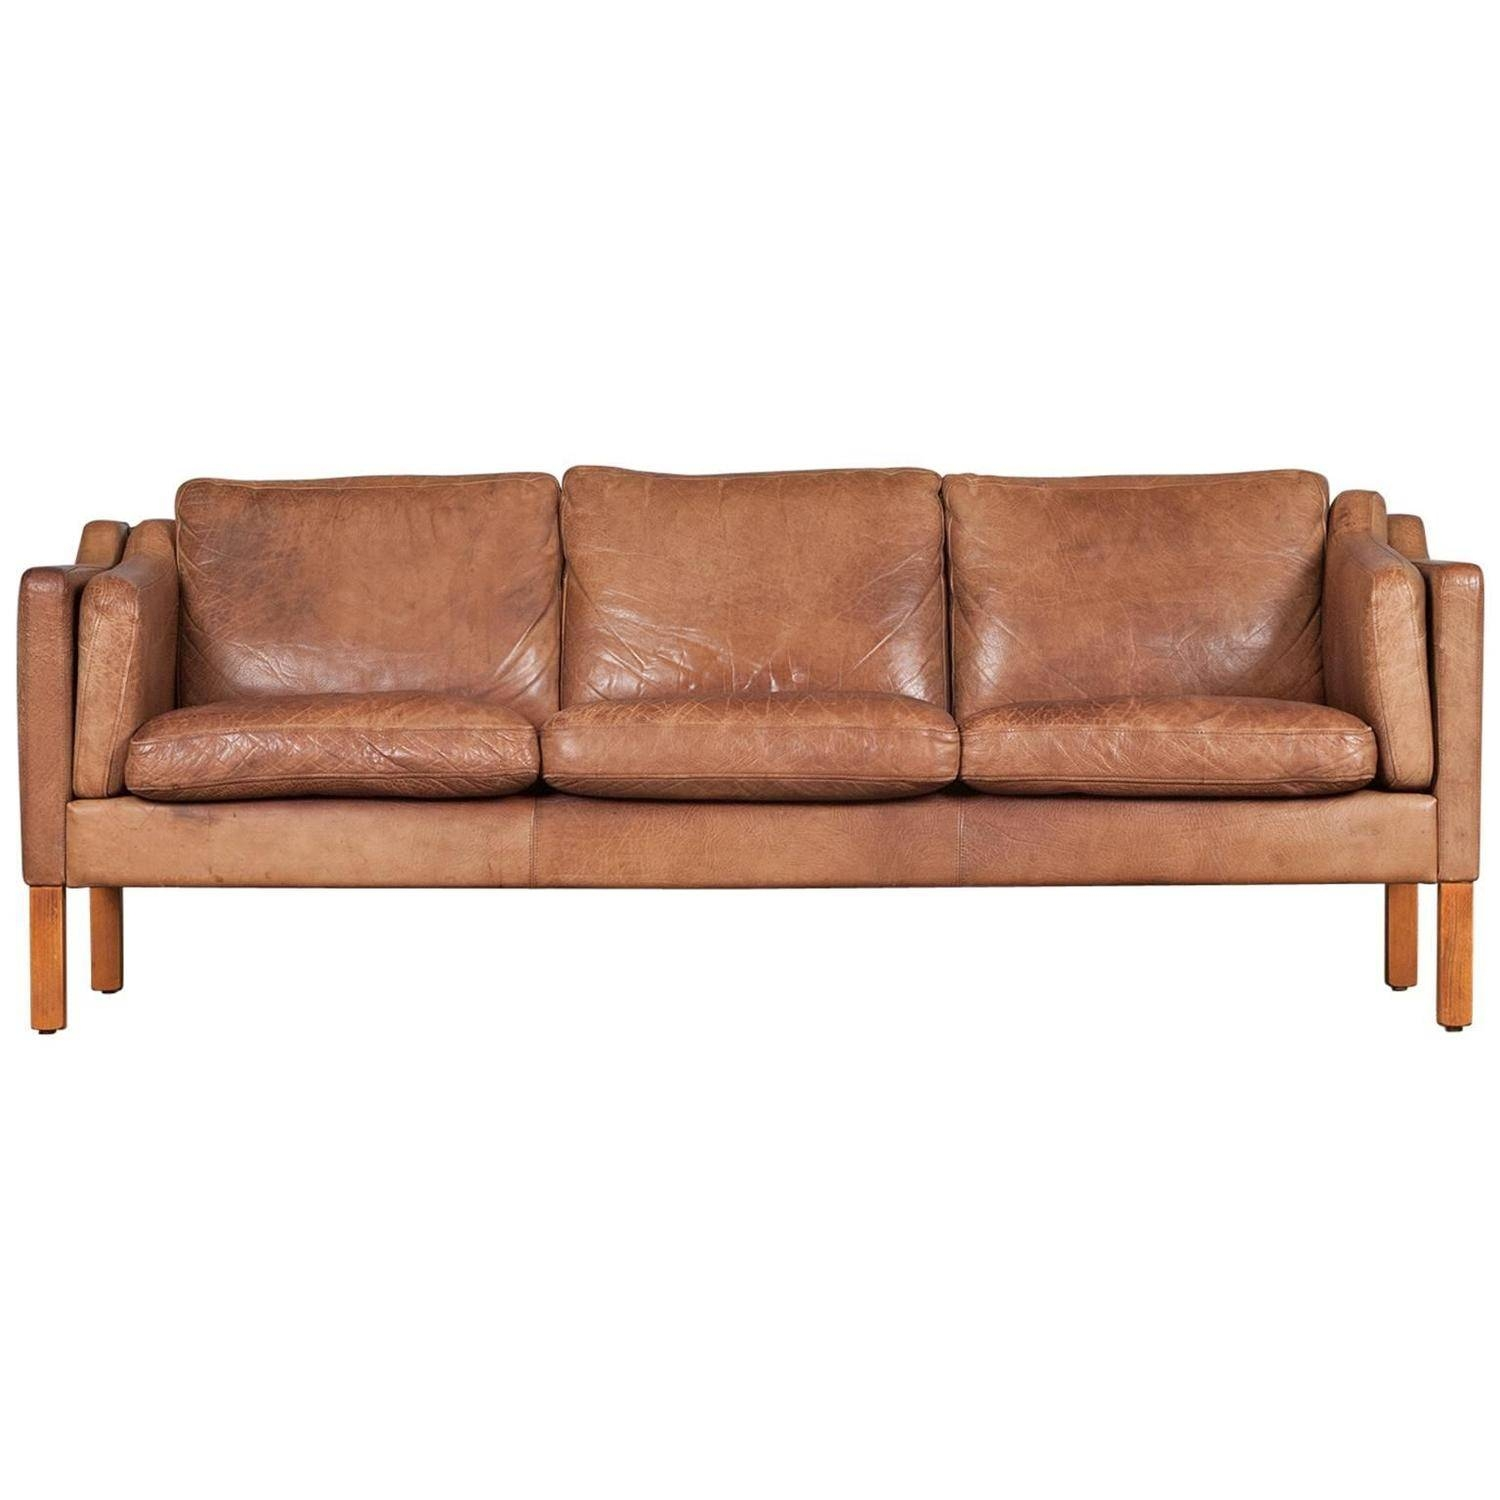 Danish Three Seater Sofa In Camel Coloured Leather, 1960S At 1Stdibs Inside Camel Colored Leather Sofas (View 7 of 15)